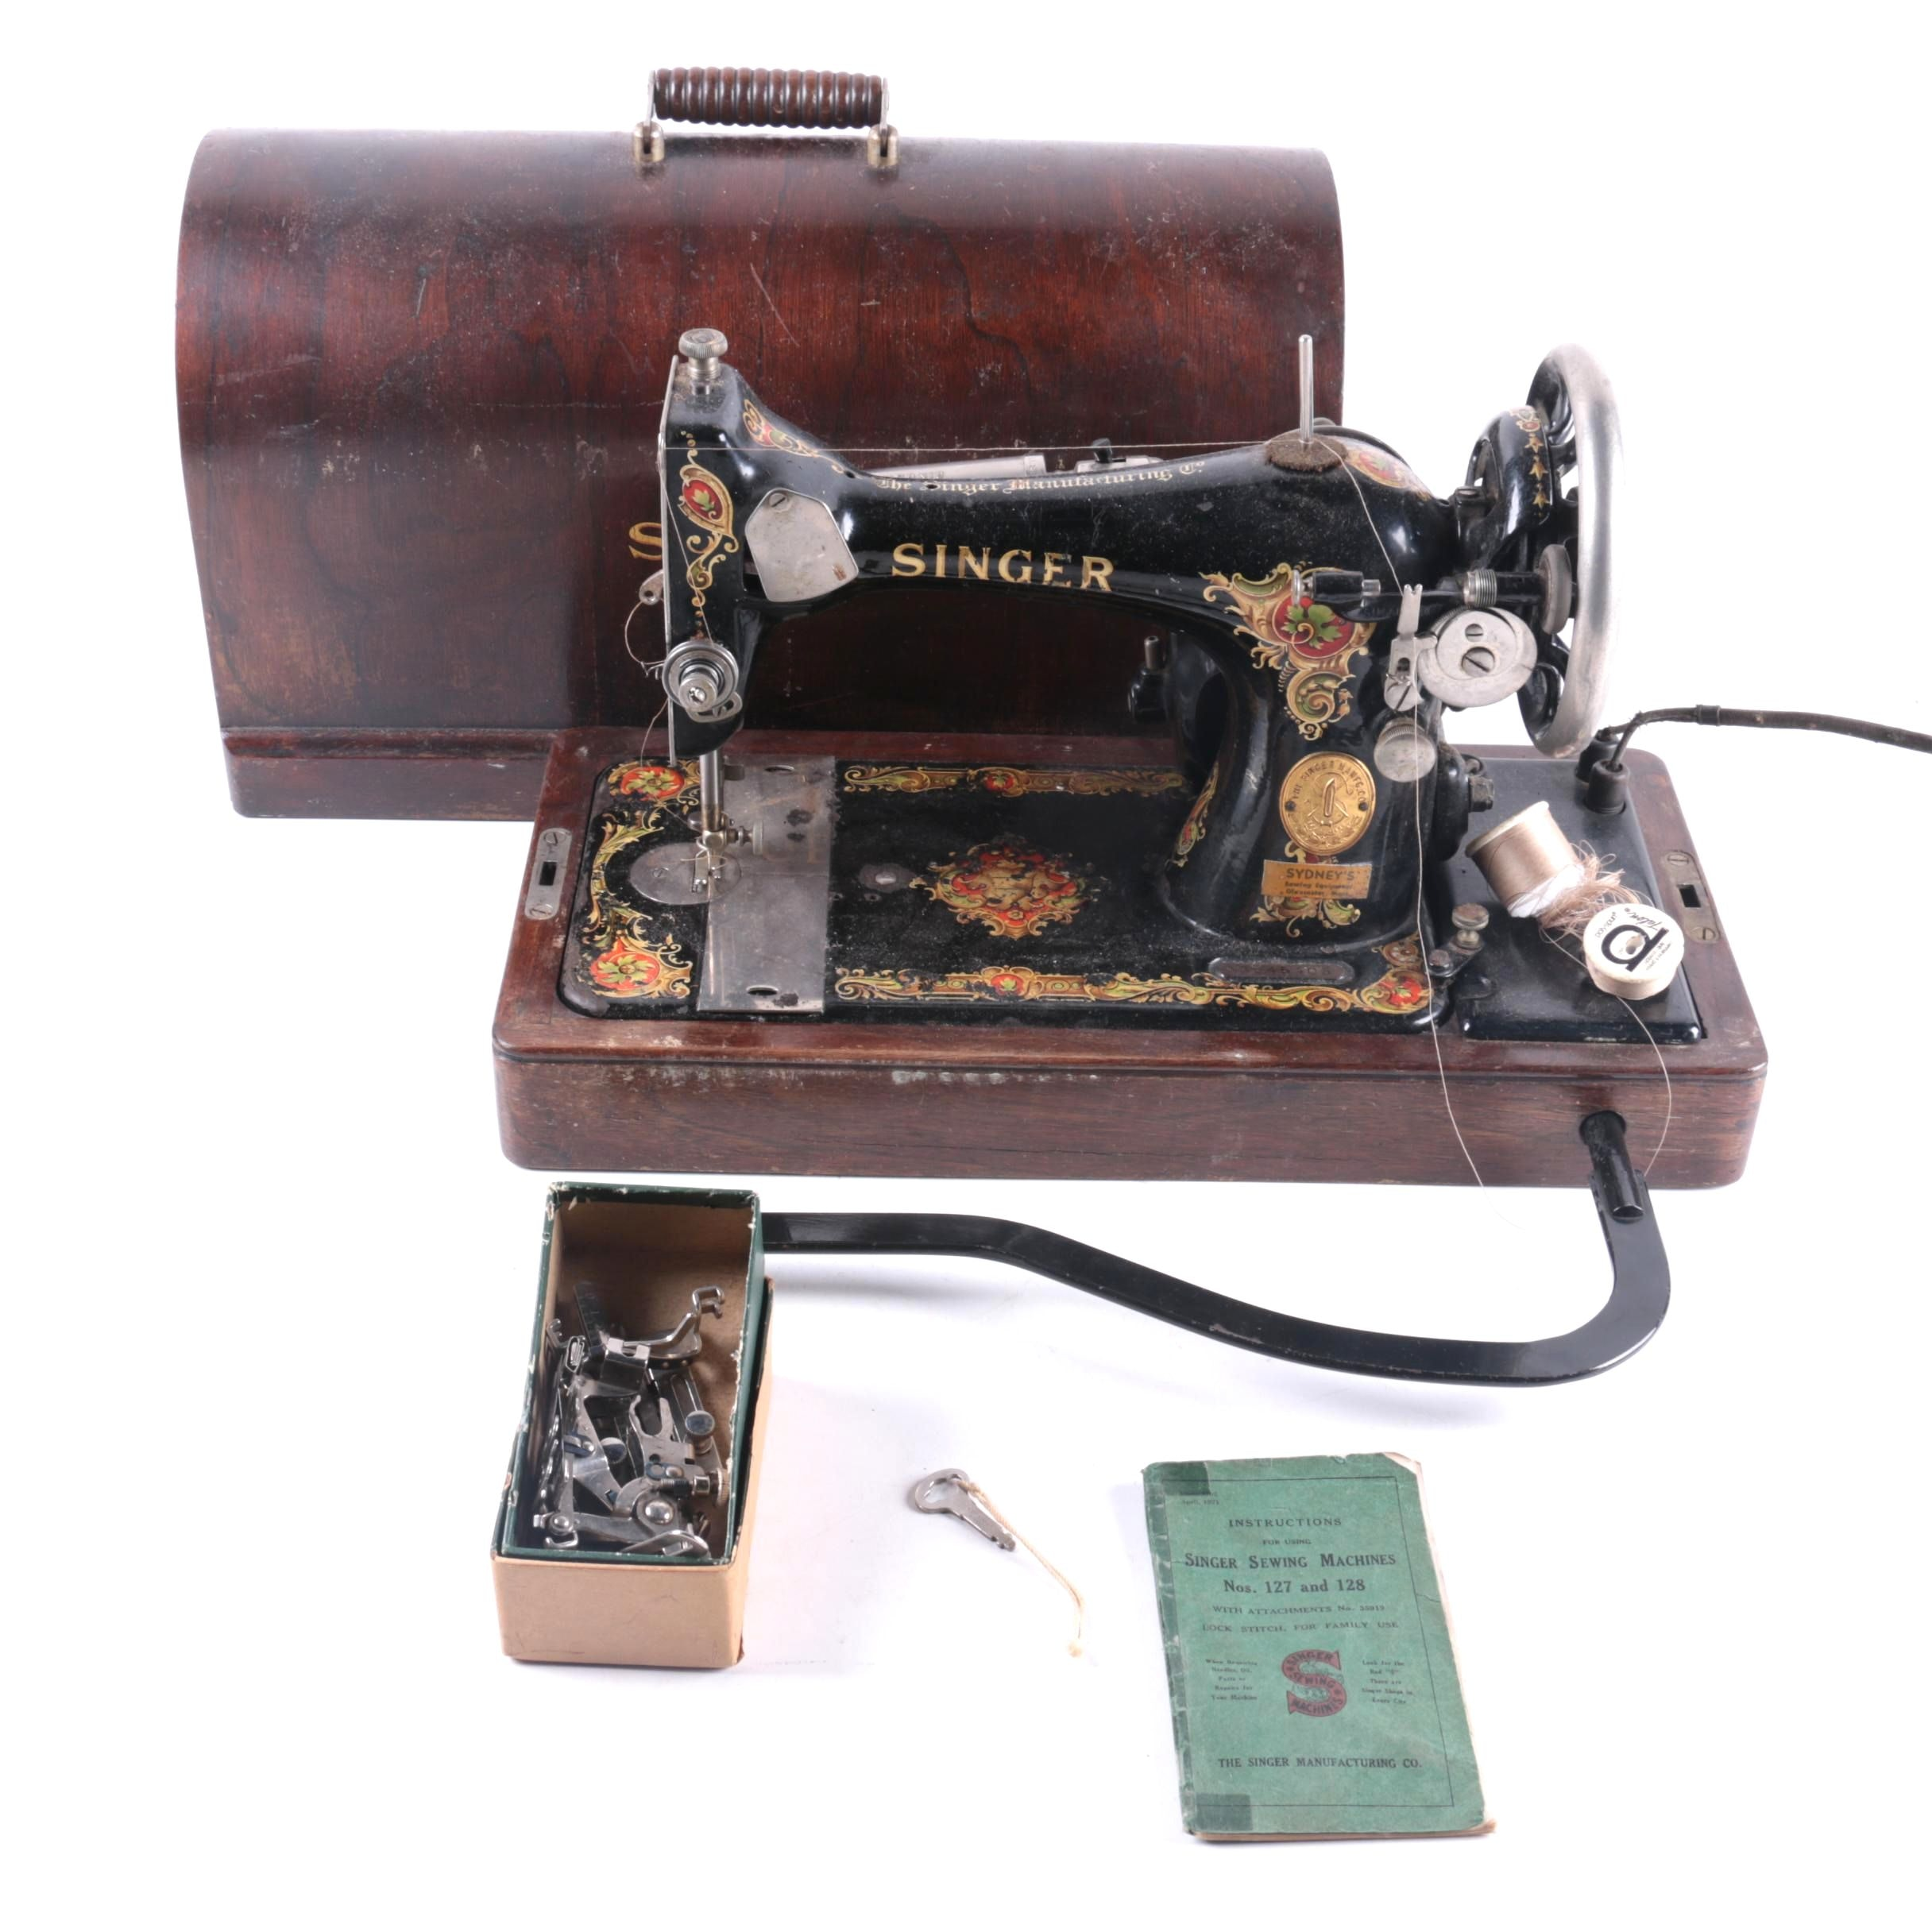 1925 Singer Sewing Machine, Manual And Accessories